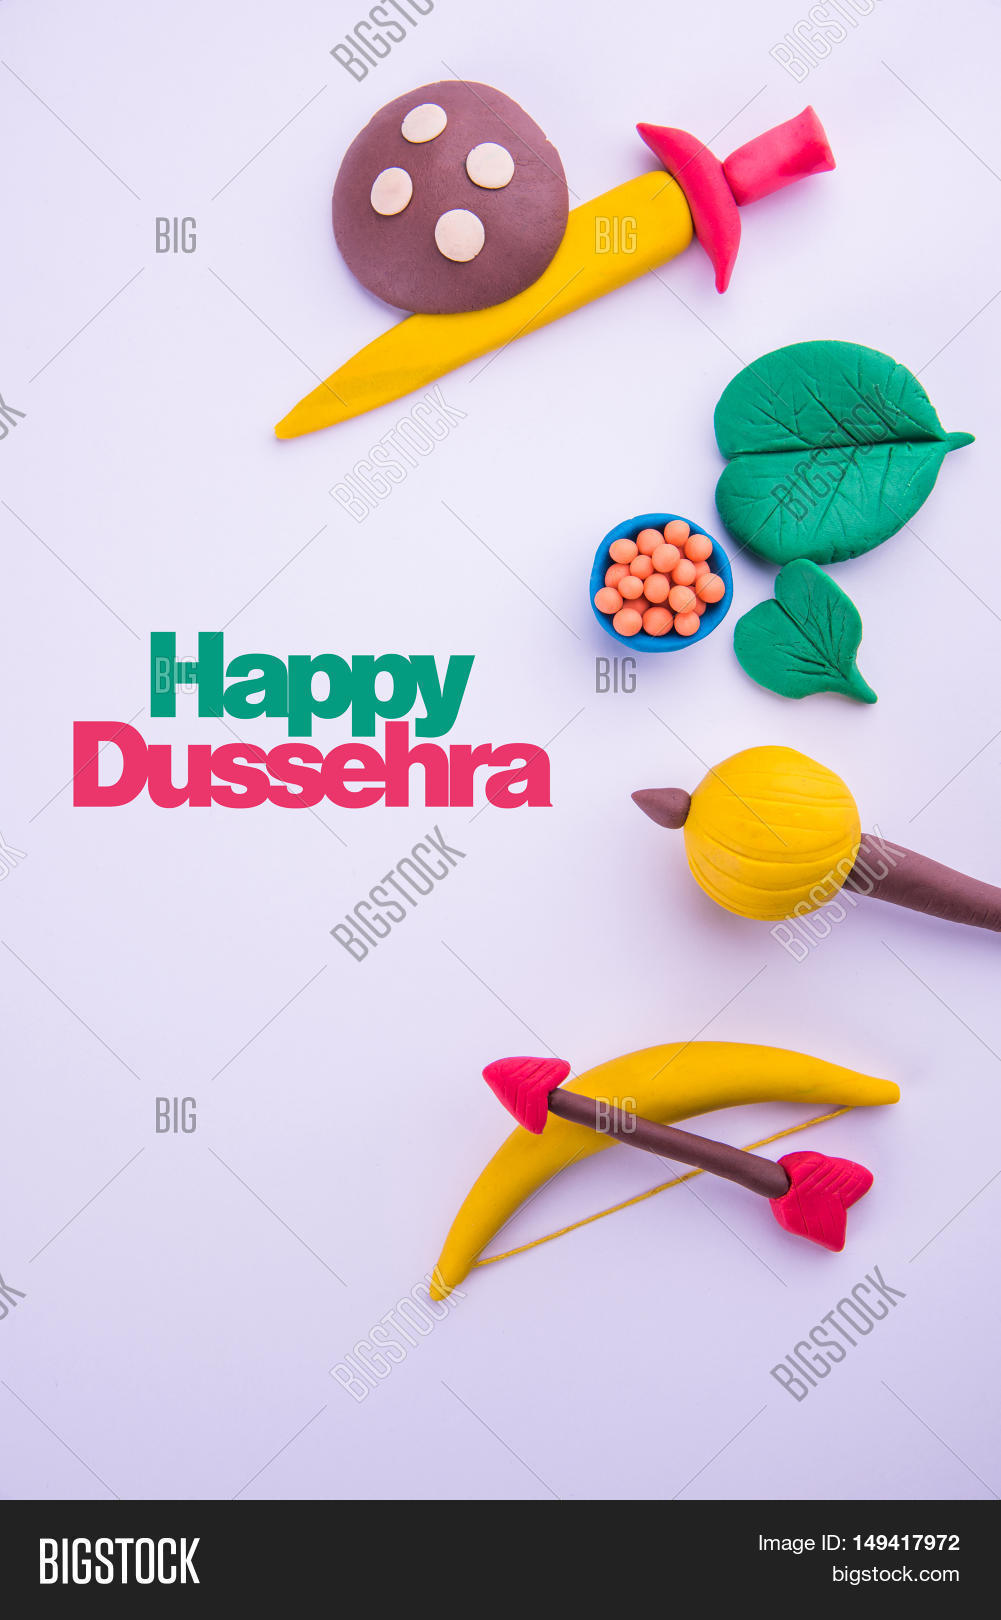 Happy Dussehra Greeting Card Made Image Photo Bigstock